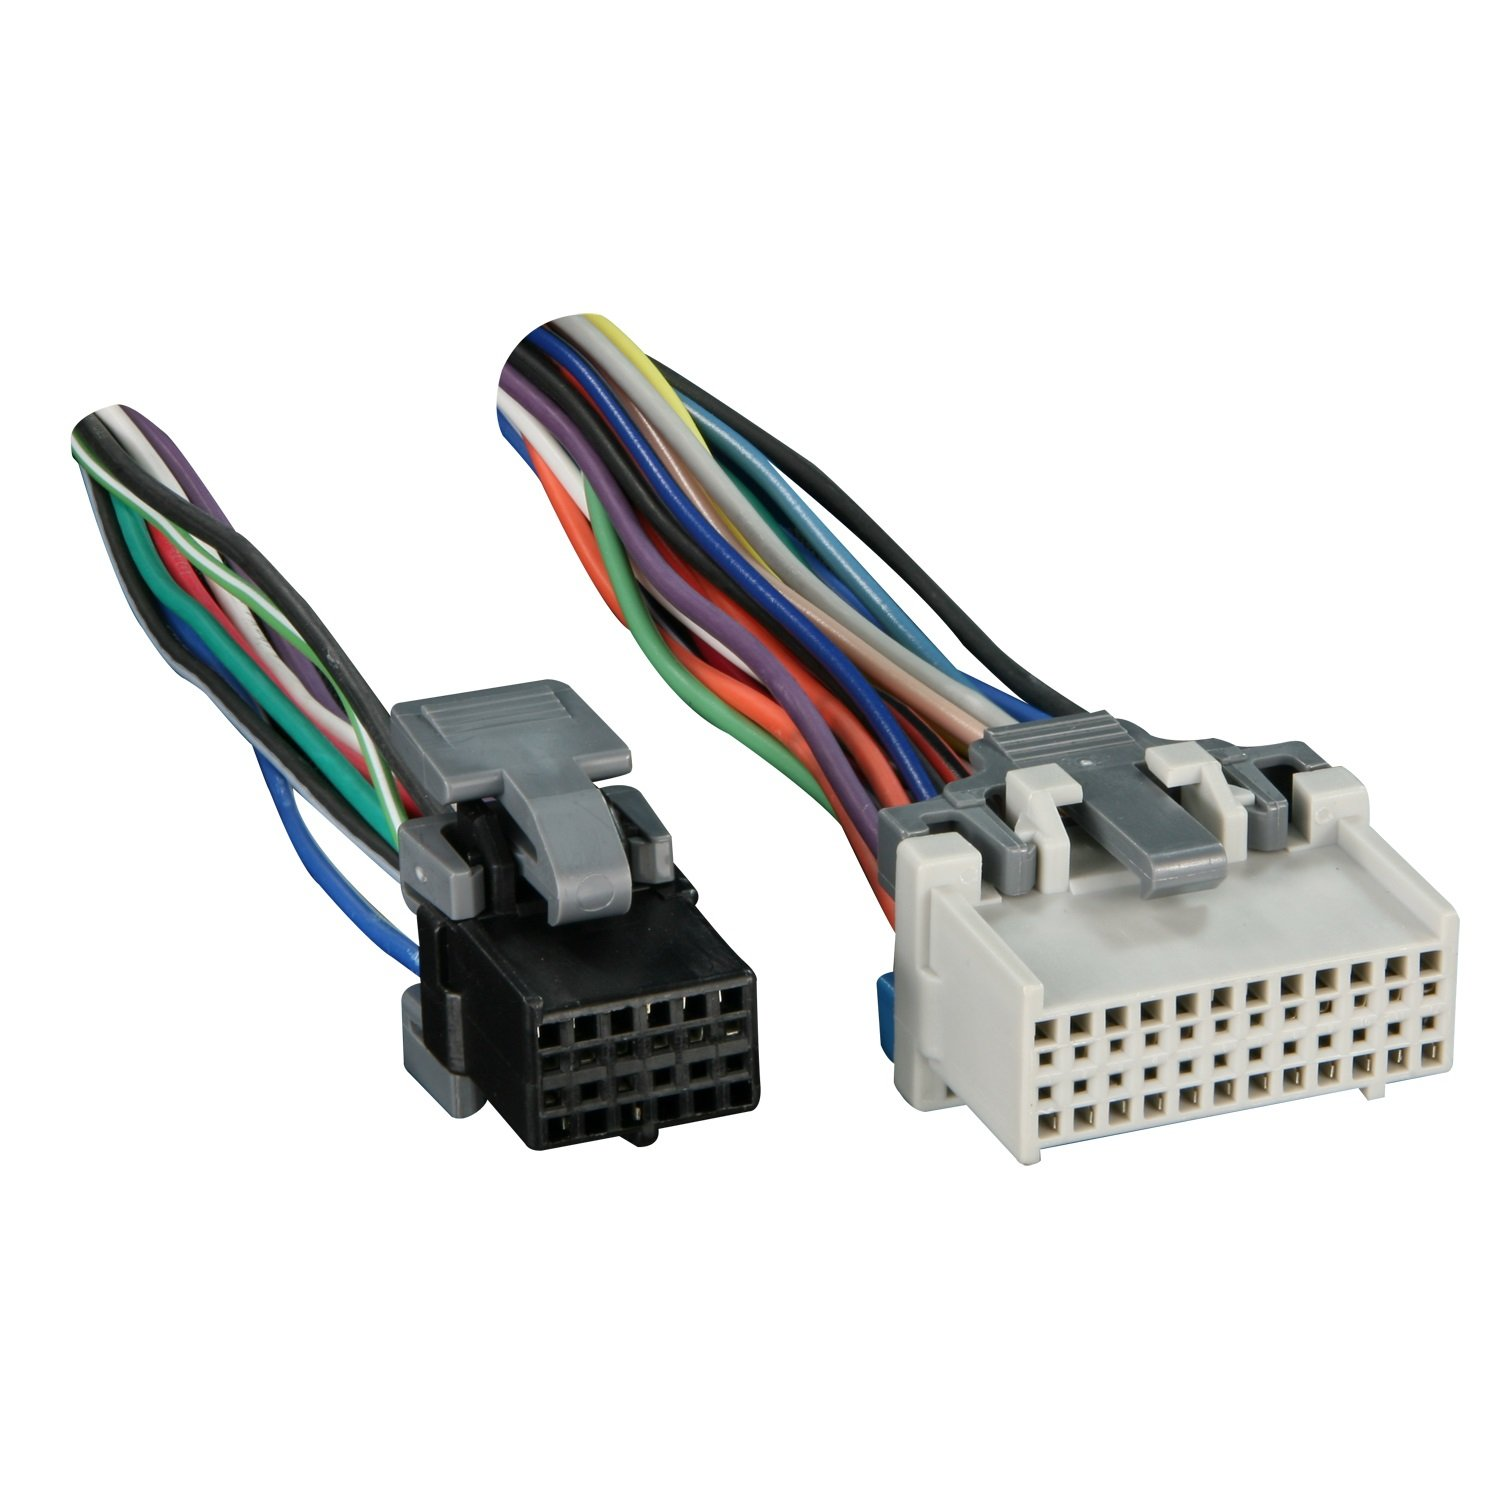 711log4bdML._SL1500_ amazon com metra turbowires 71 2003 1 wiring harness car electronics 2003 buick rendezvous stereo wiring harness at bayanpartner.co